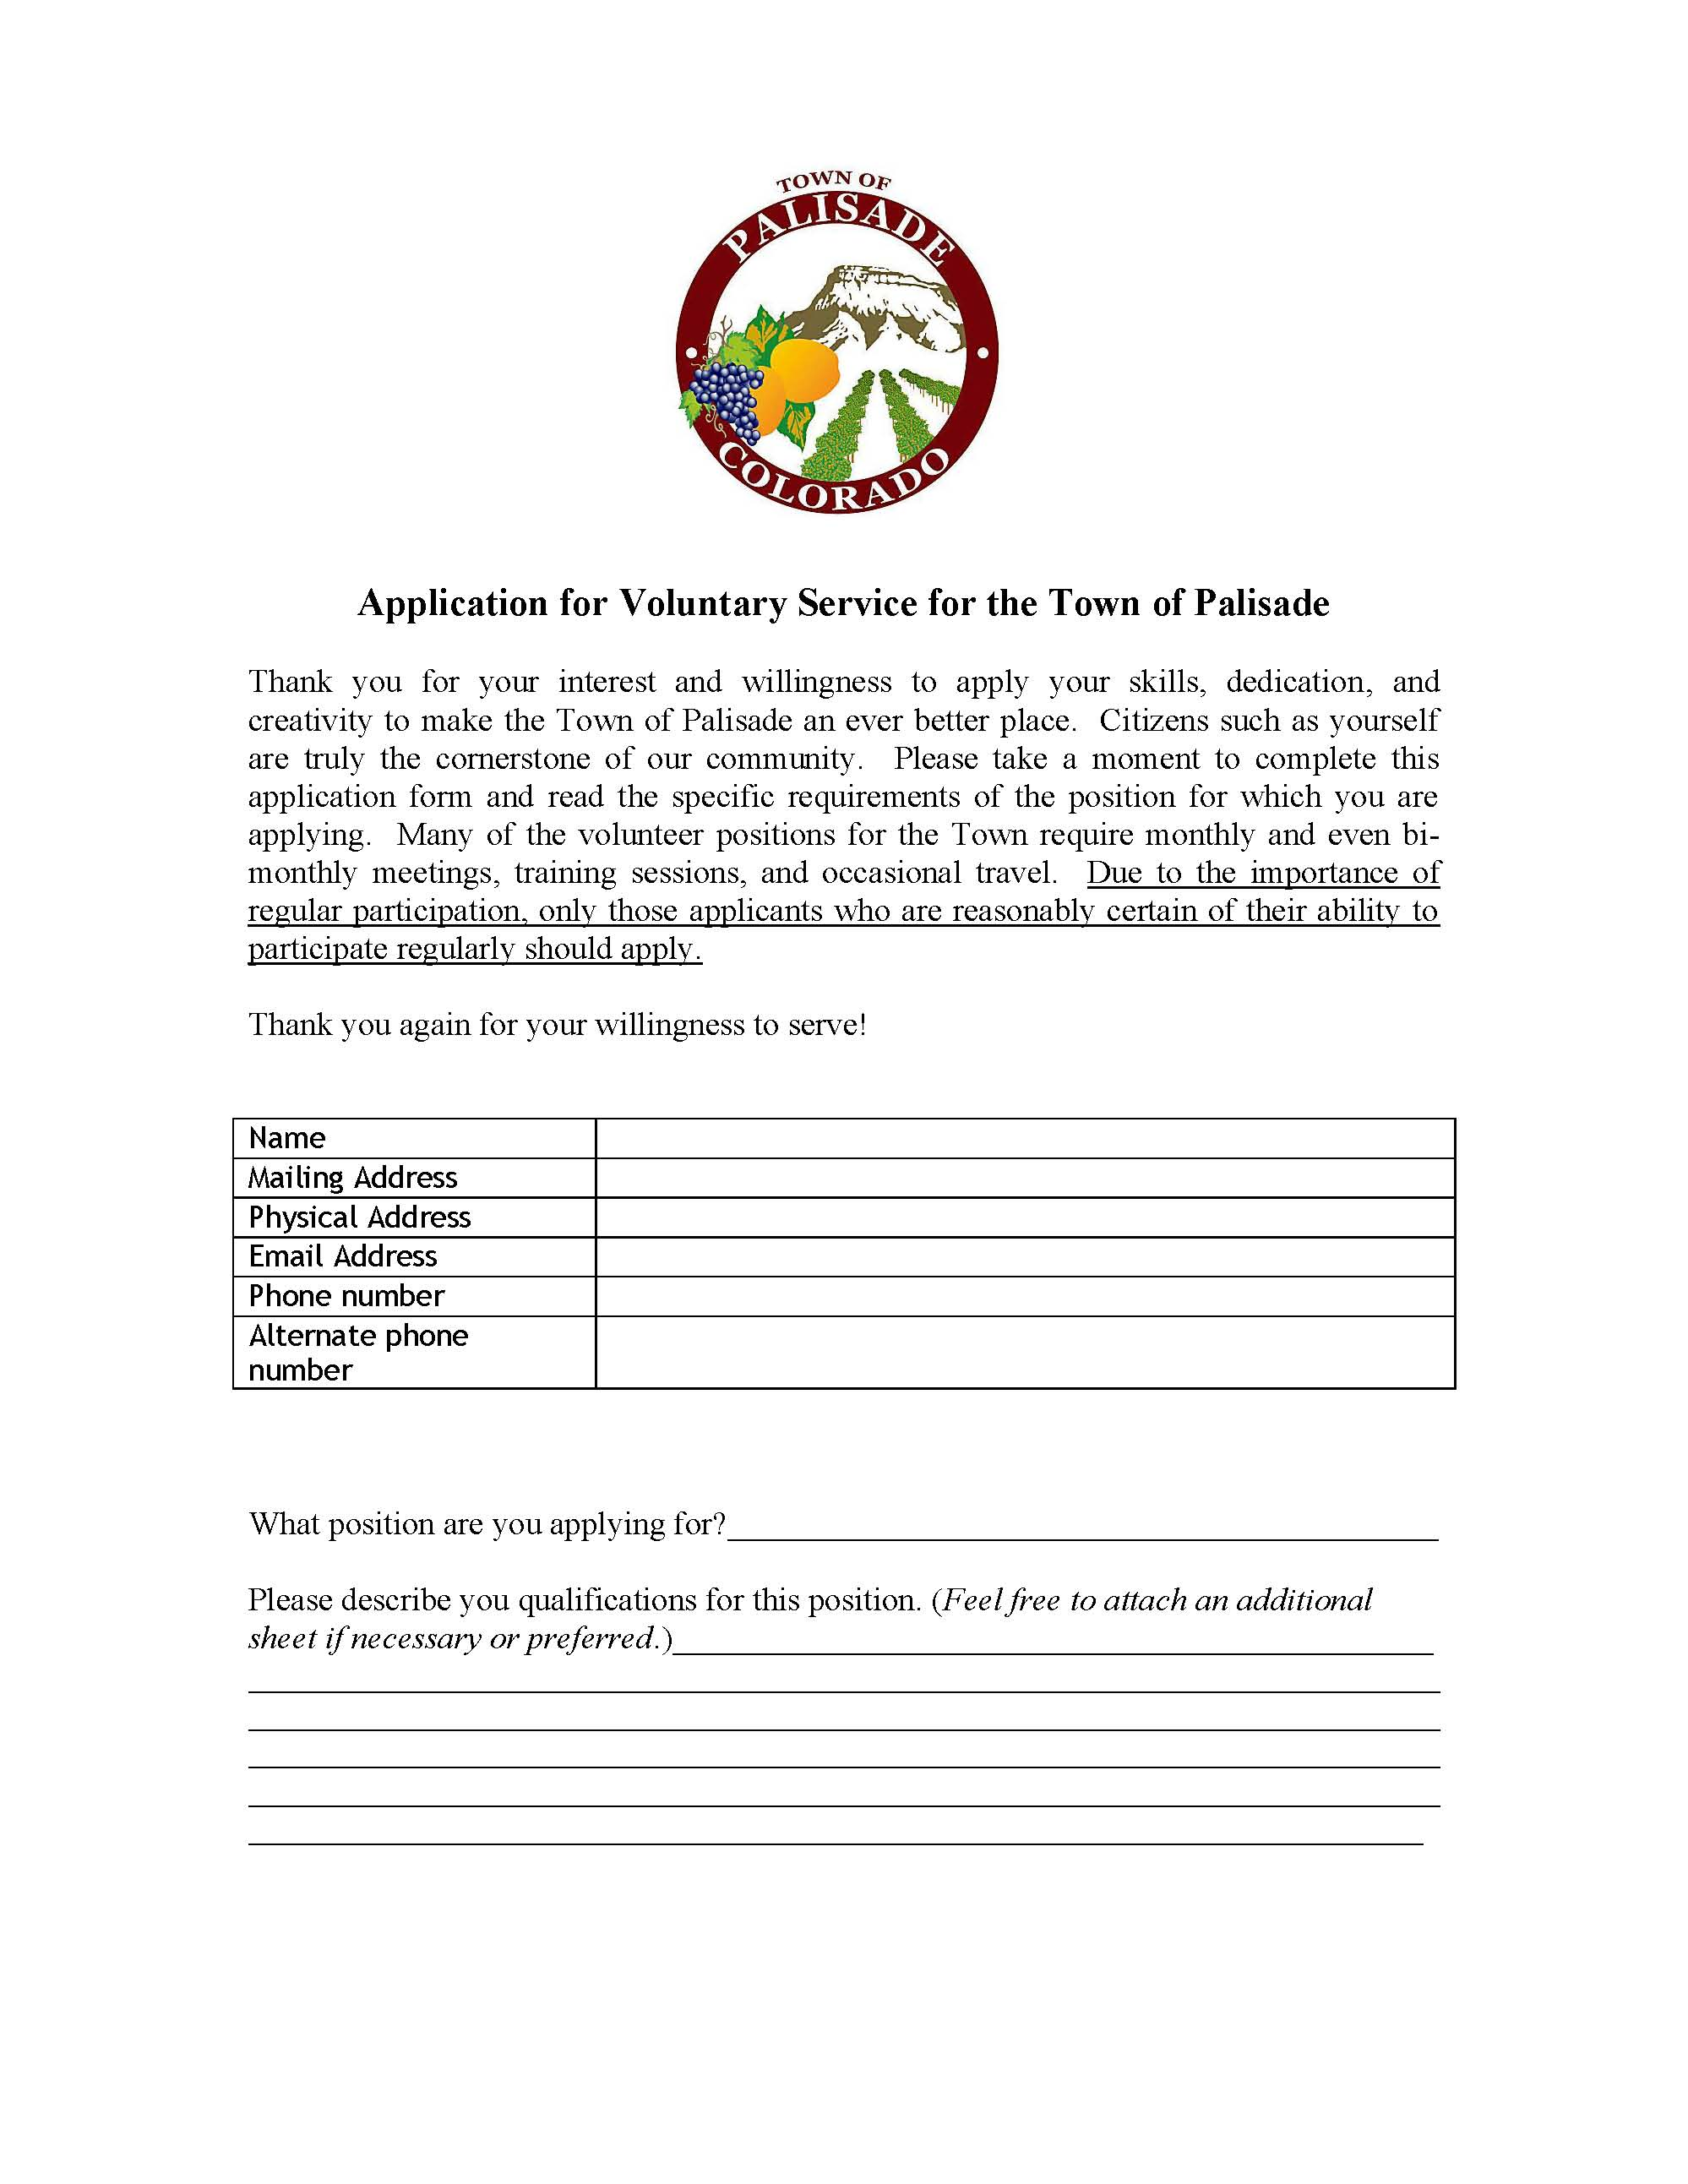 Application for volunteer position Page 1